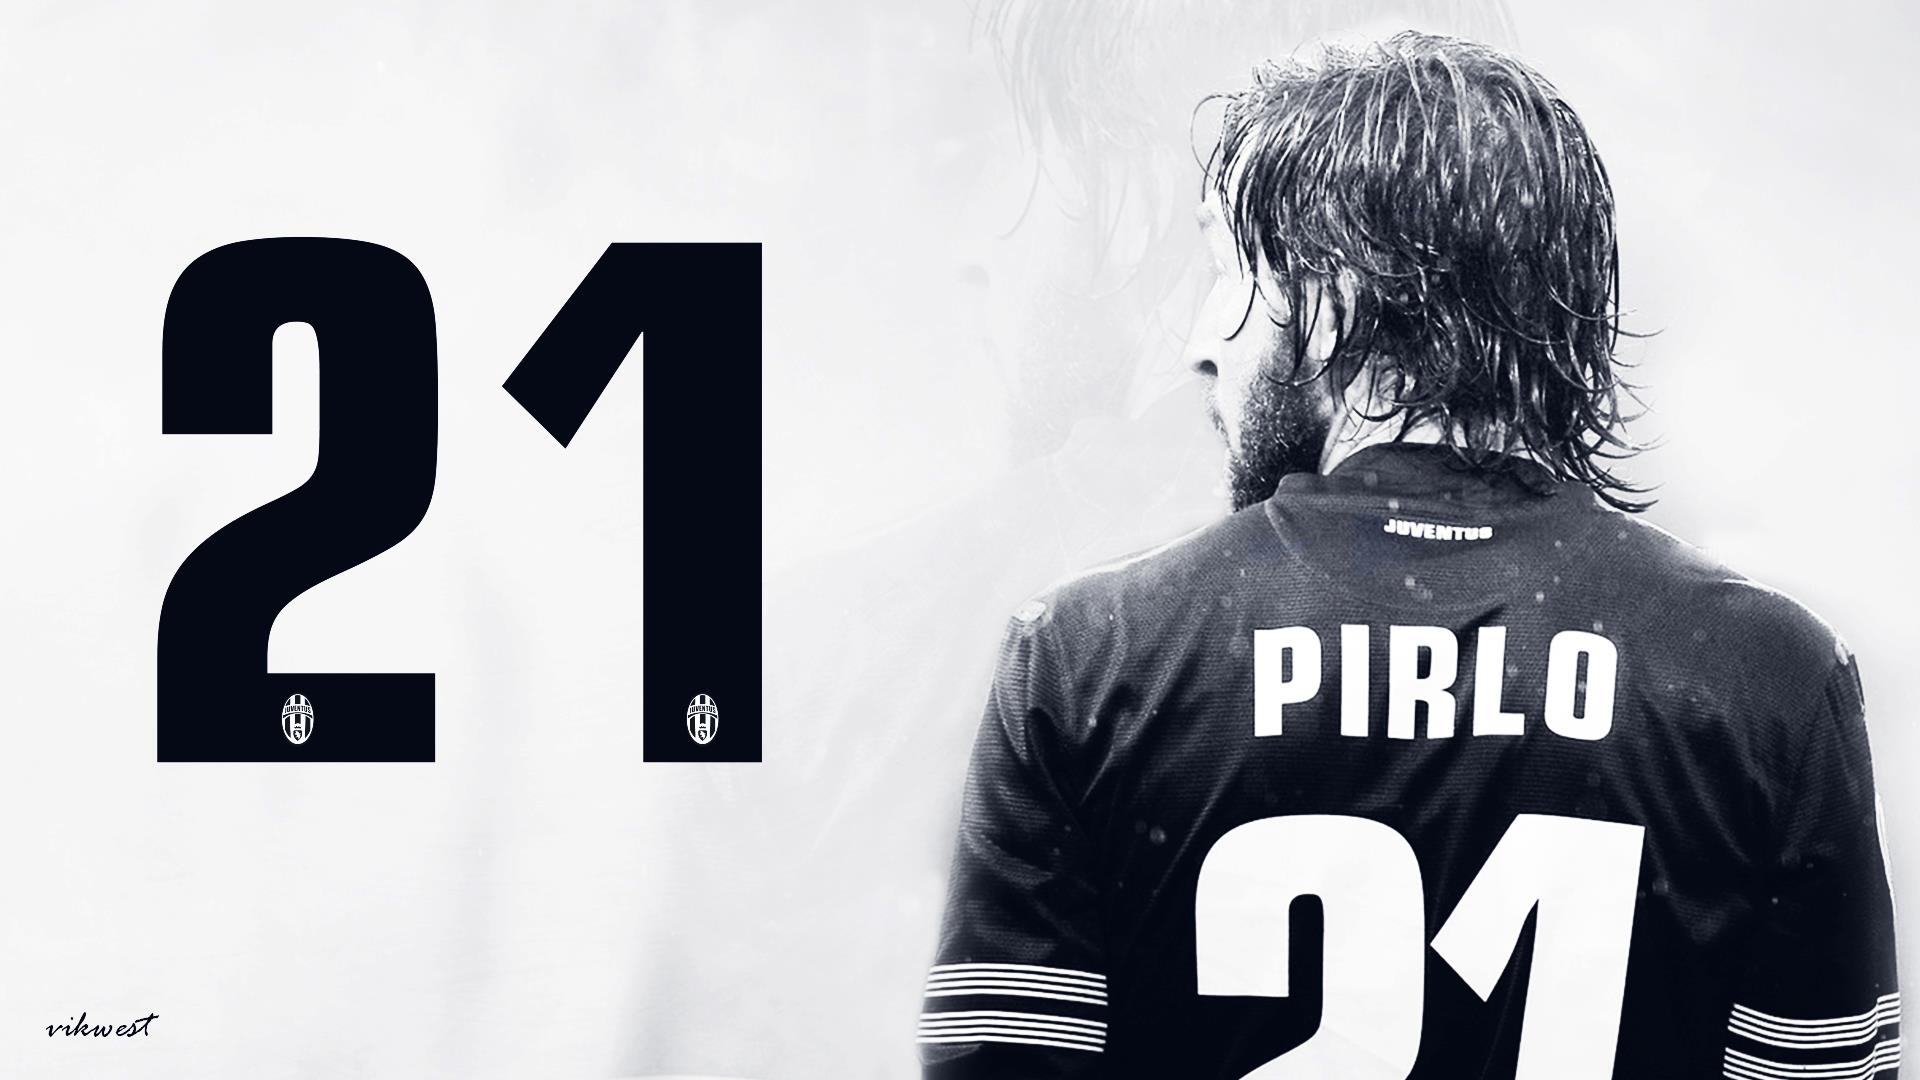 1920x1080 - Andrea Pirlo Wallpapers 1